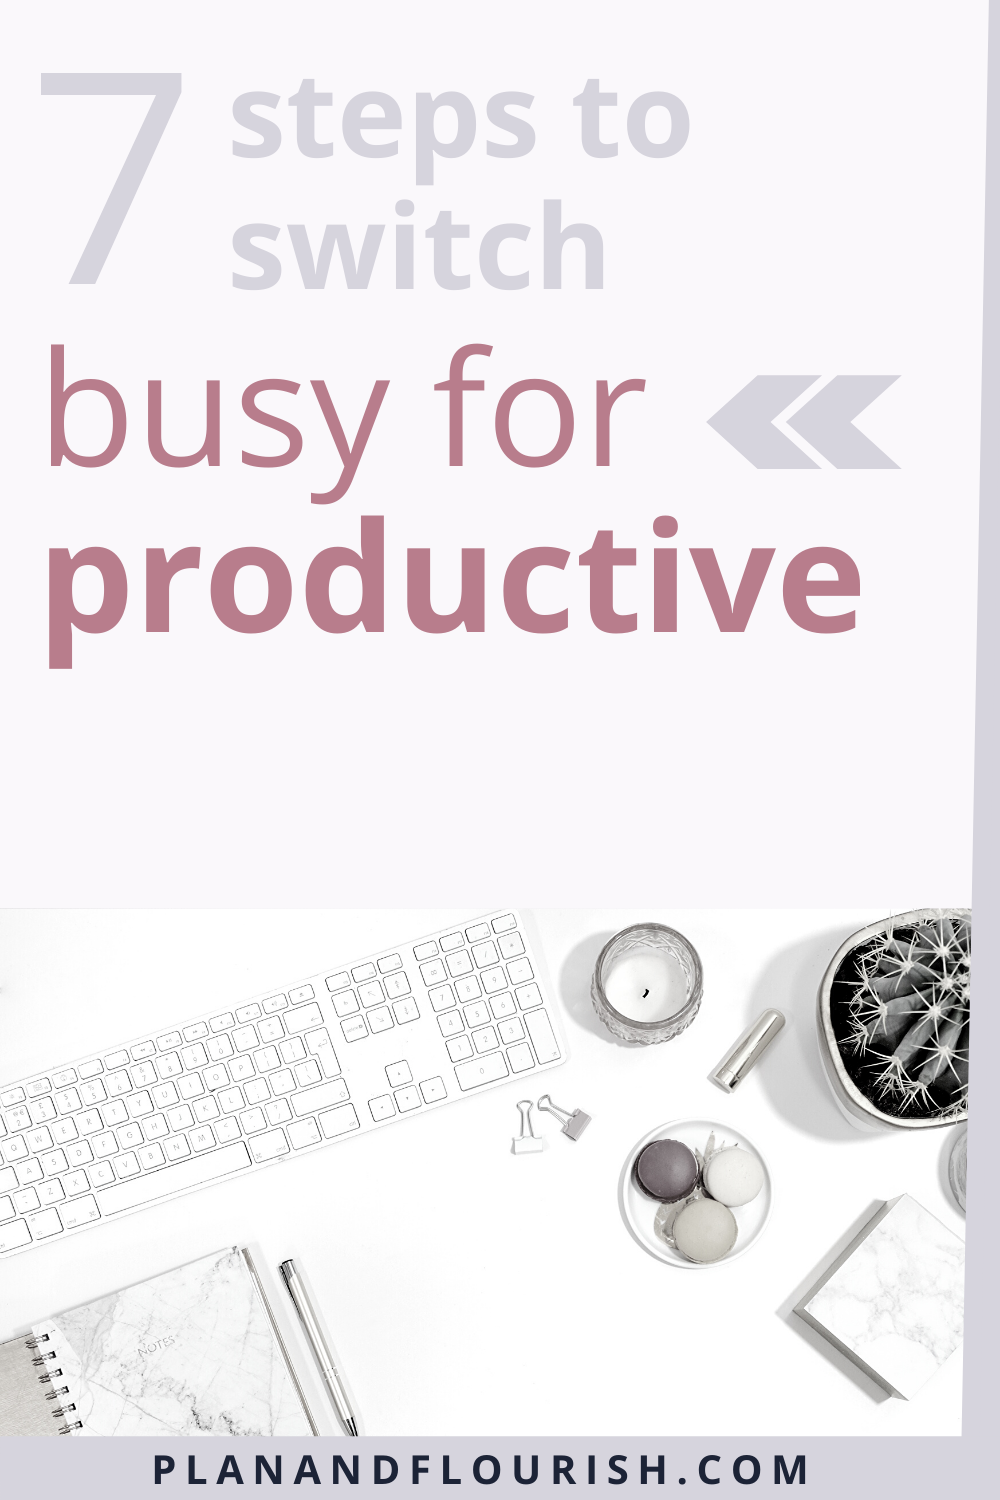 7 Steps To Switch Busy For Productive